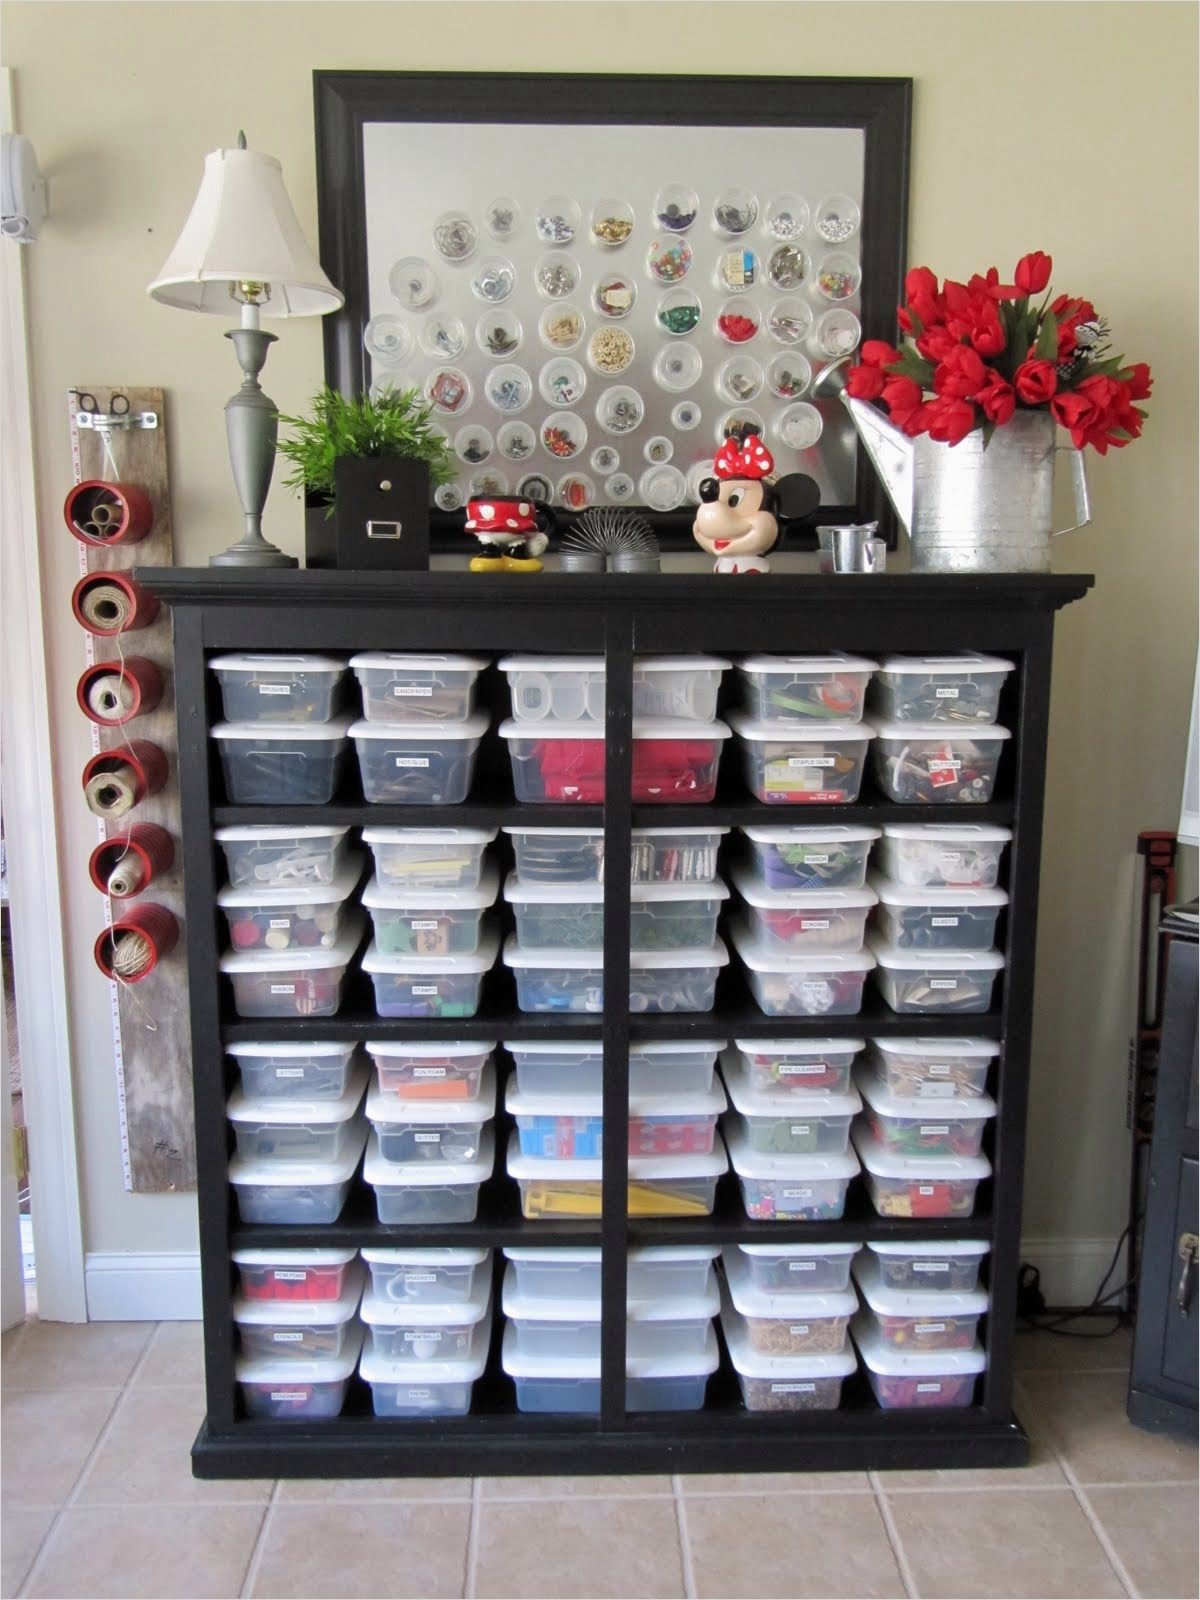 40 Creative Sewing Room Storage Ideas 39 Blukatkraft Bead Storage Craft Room Ideas 6